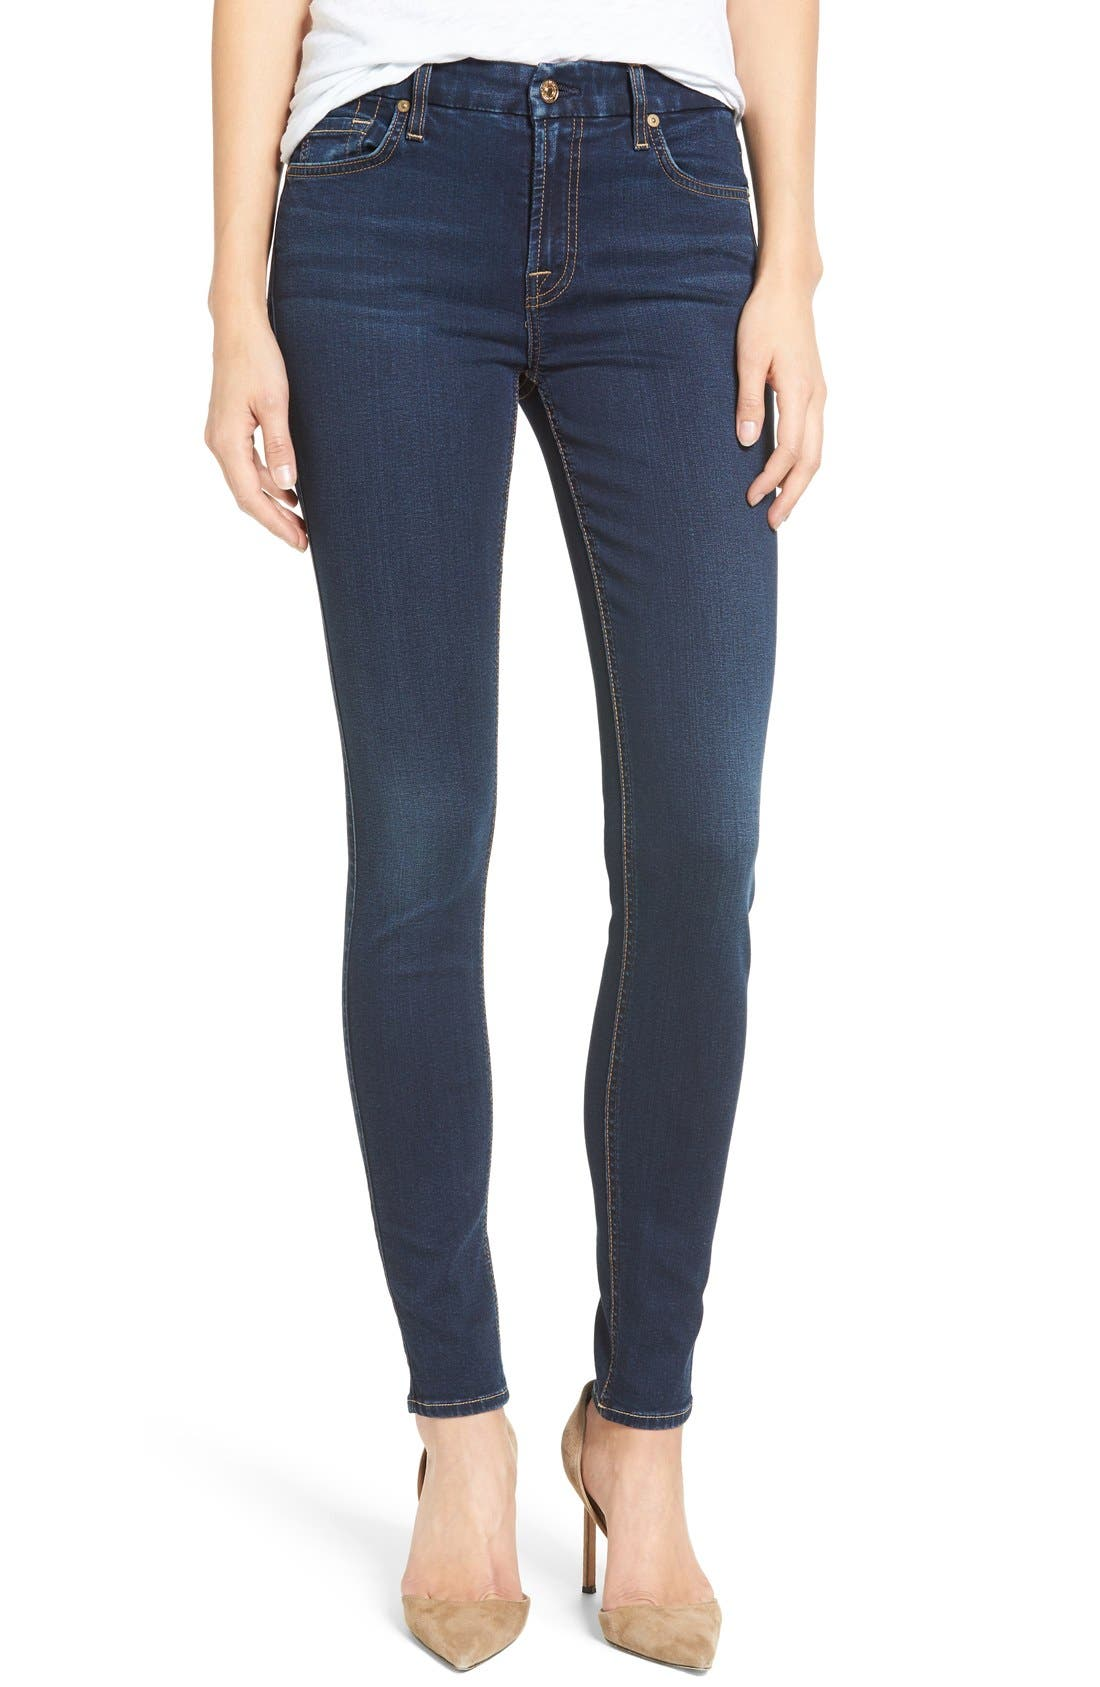 b(air) Skinny Jeans,                         Main,                         color, Bair Tranquil Blue